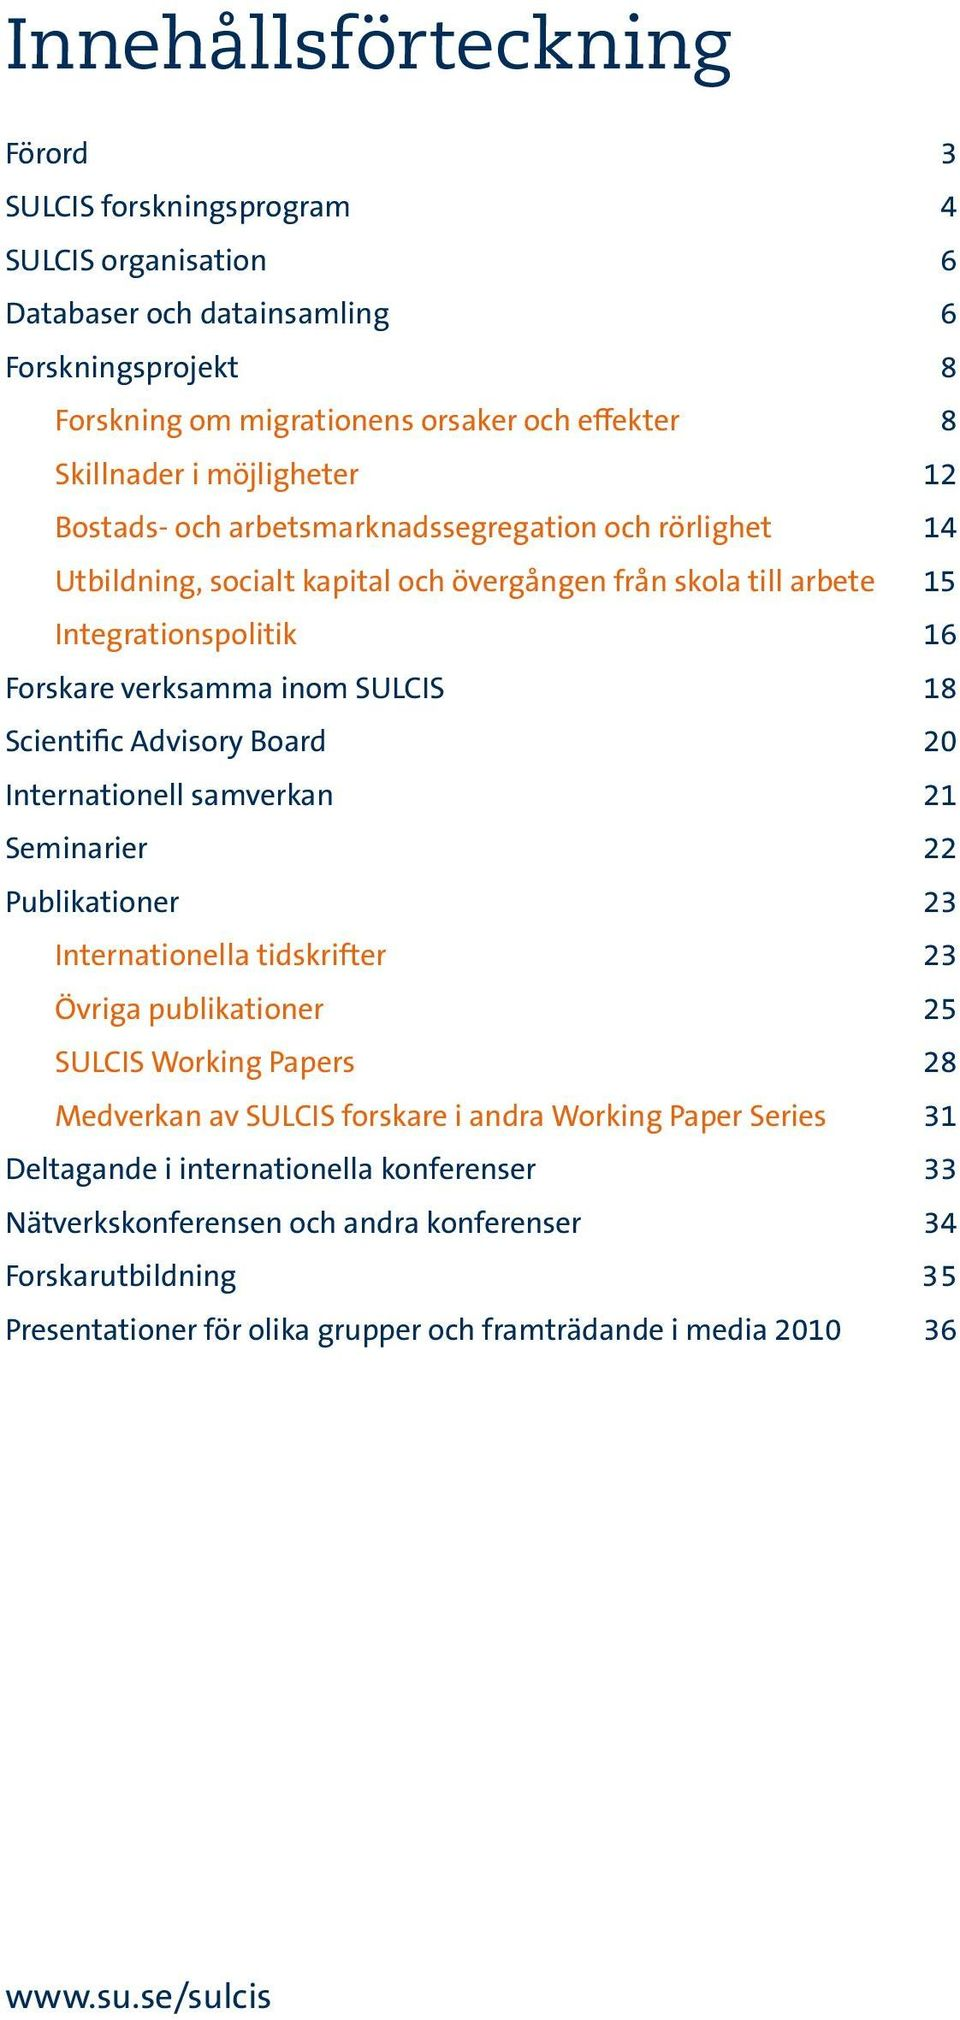 Scientific Advisory Board 20 Internationell samverkan 21 Seminarier 22 Publikationer 23 Internationella tidskrifter 23 Övriga publikationer 25 SULCIS Working Papers 28 Medverkan av SULCIS forskare i